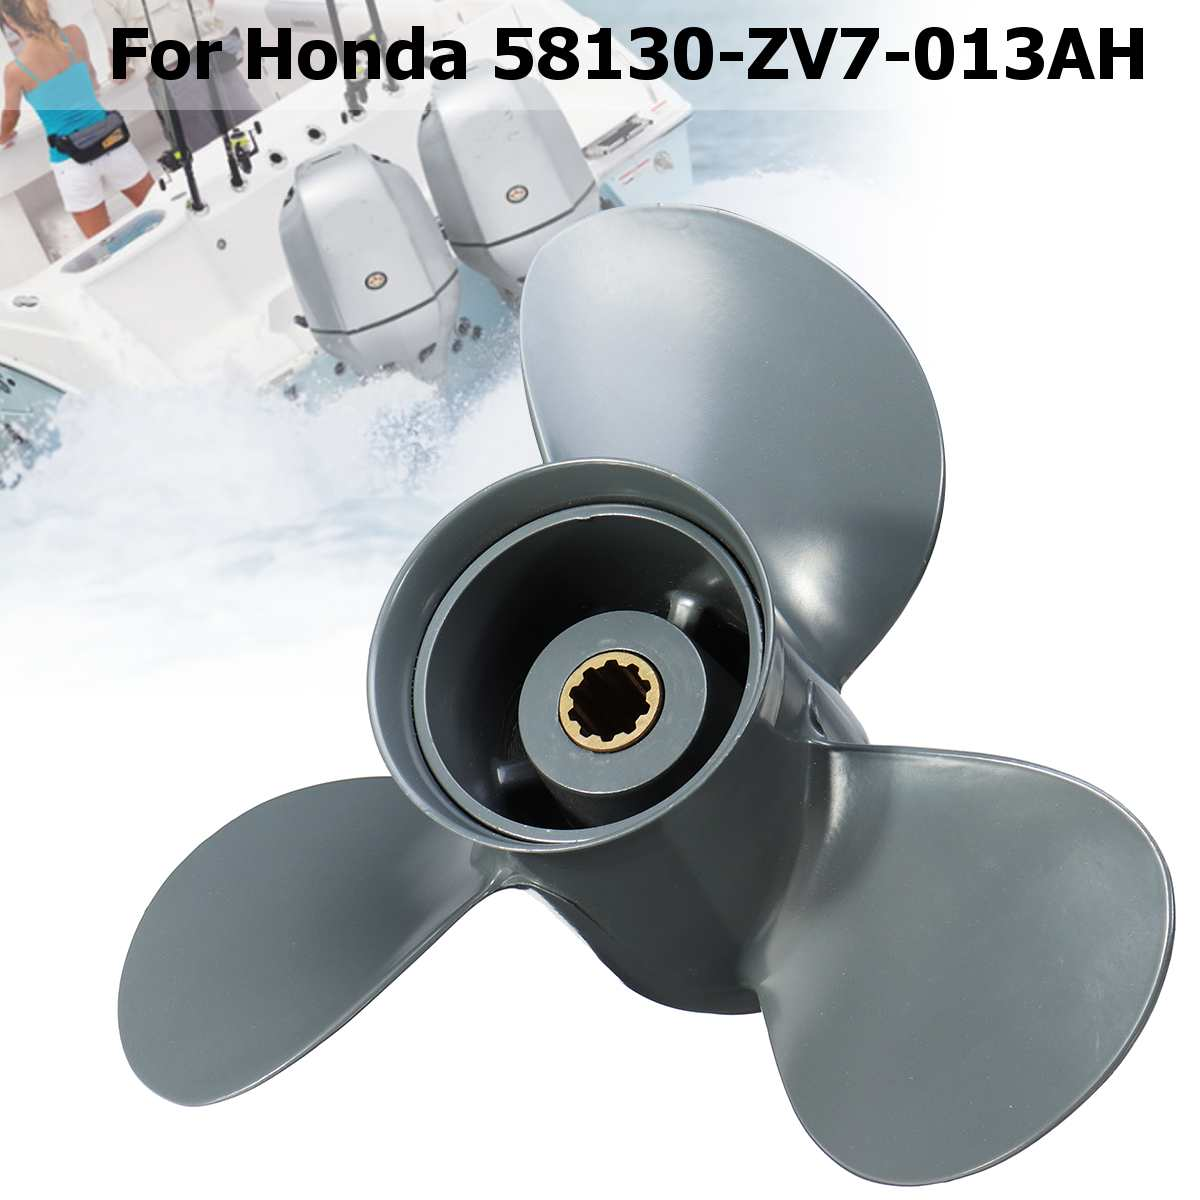 Boat Outboard Propeller 58130-ZV7-013AH  For Honda 25-30HP 9 7/8 x 13 Aluminum Alloy Gray 3 Blades 10 Spline Tooths R RotationBoat Outboard Propeller 58130-ZV7-013AH  For Honda 25-30HP 9 7/8 x 13 Aluminum Alloy Gray 3 Blades 10 Spline Tooths R Rotation